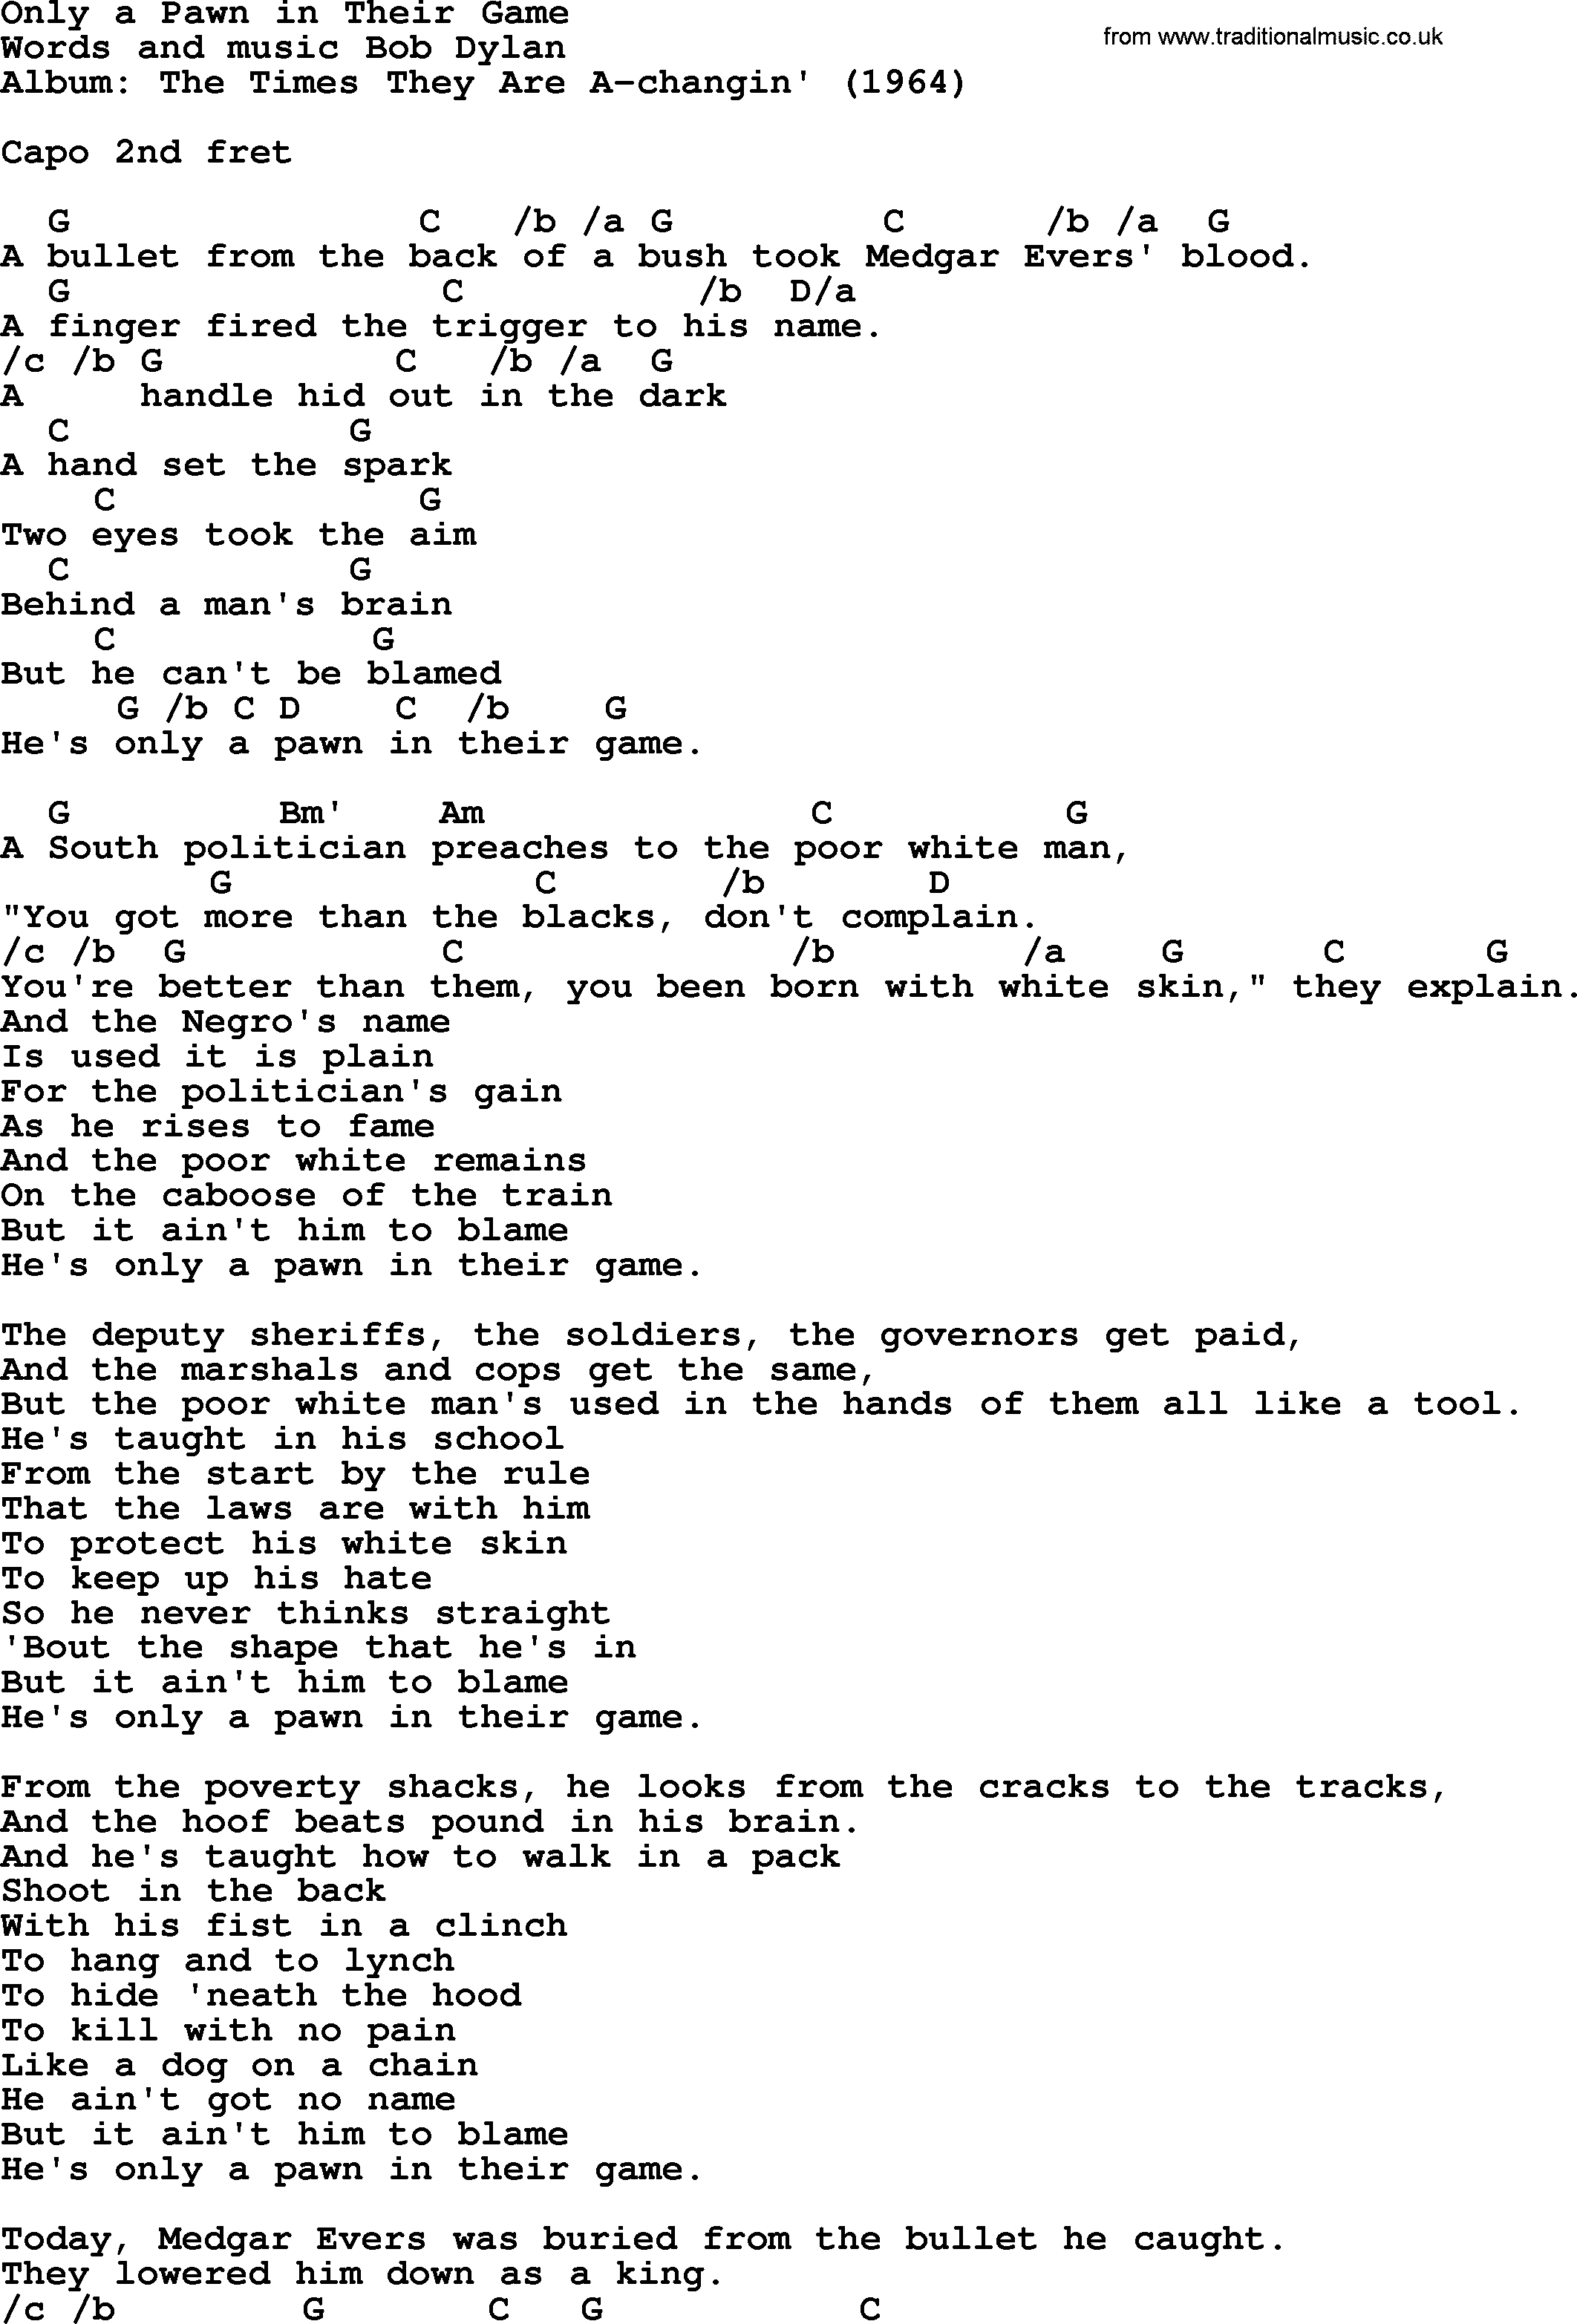 Bob dylan song only a pawn in their game lyrics and chords bob dylan song lyrics with chords only a pawn in their game hexwebz Images